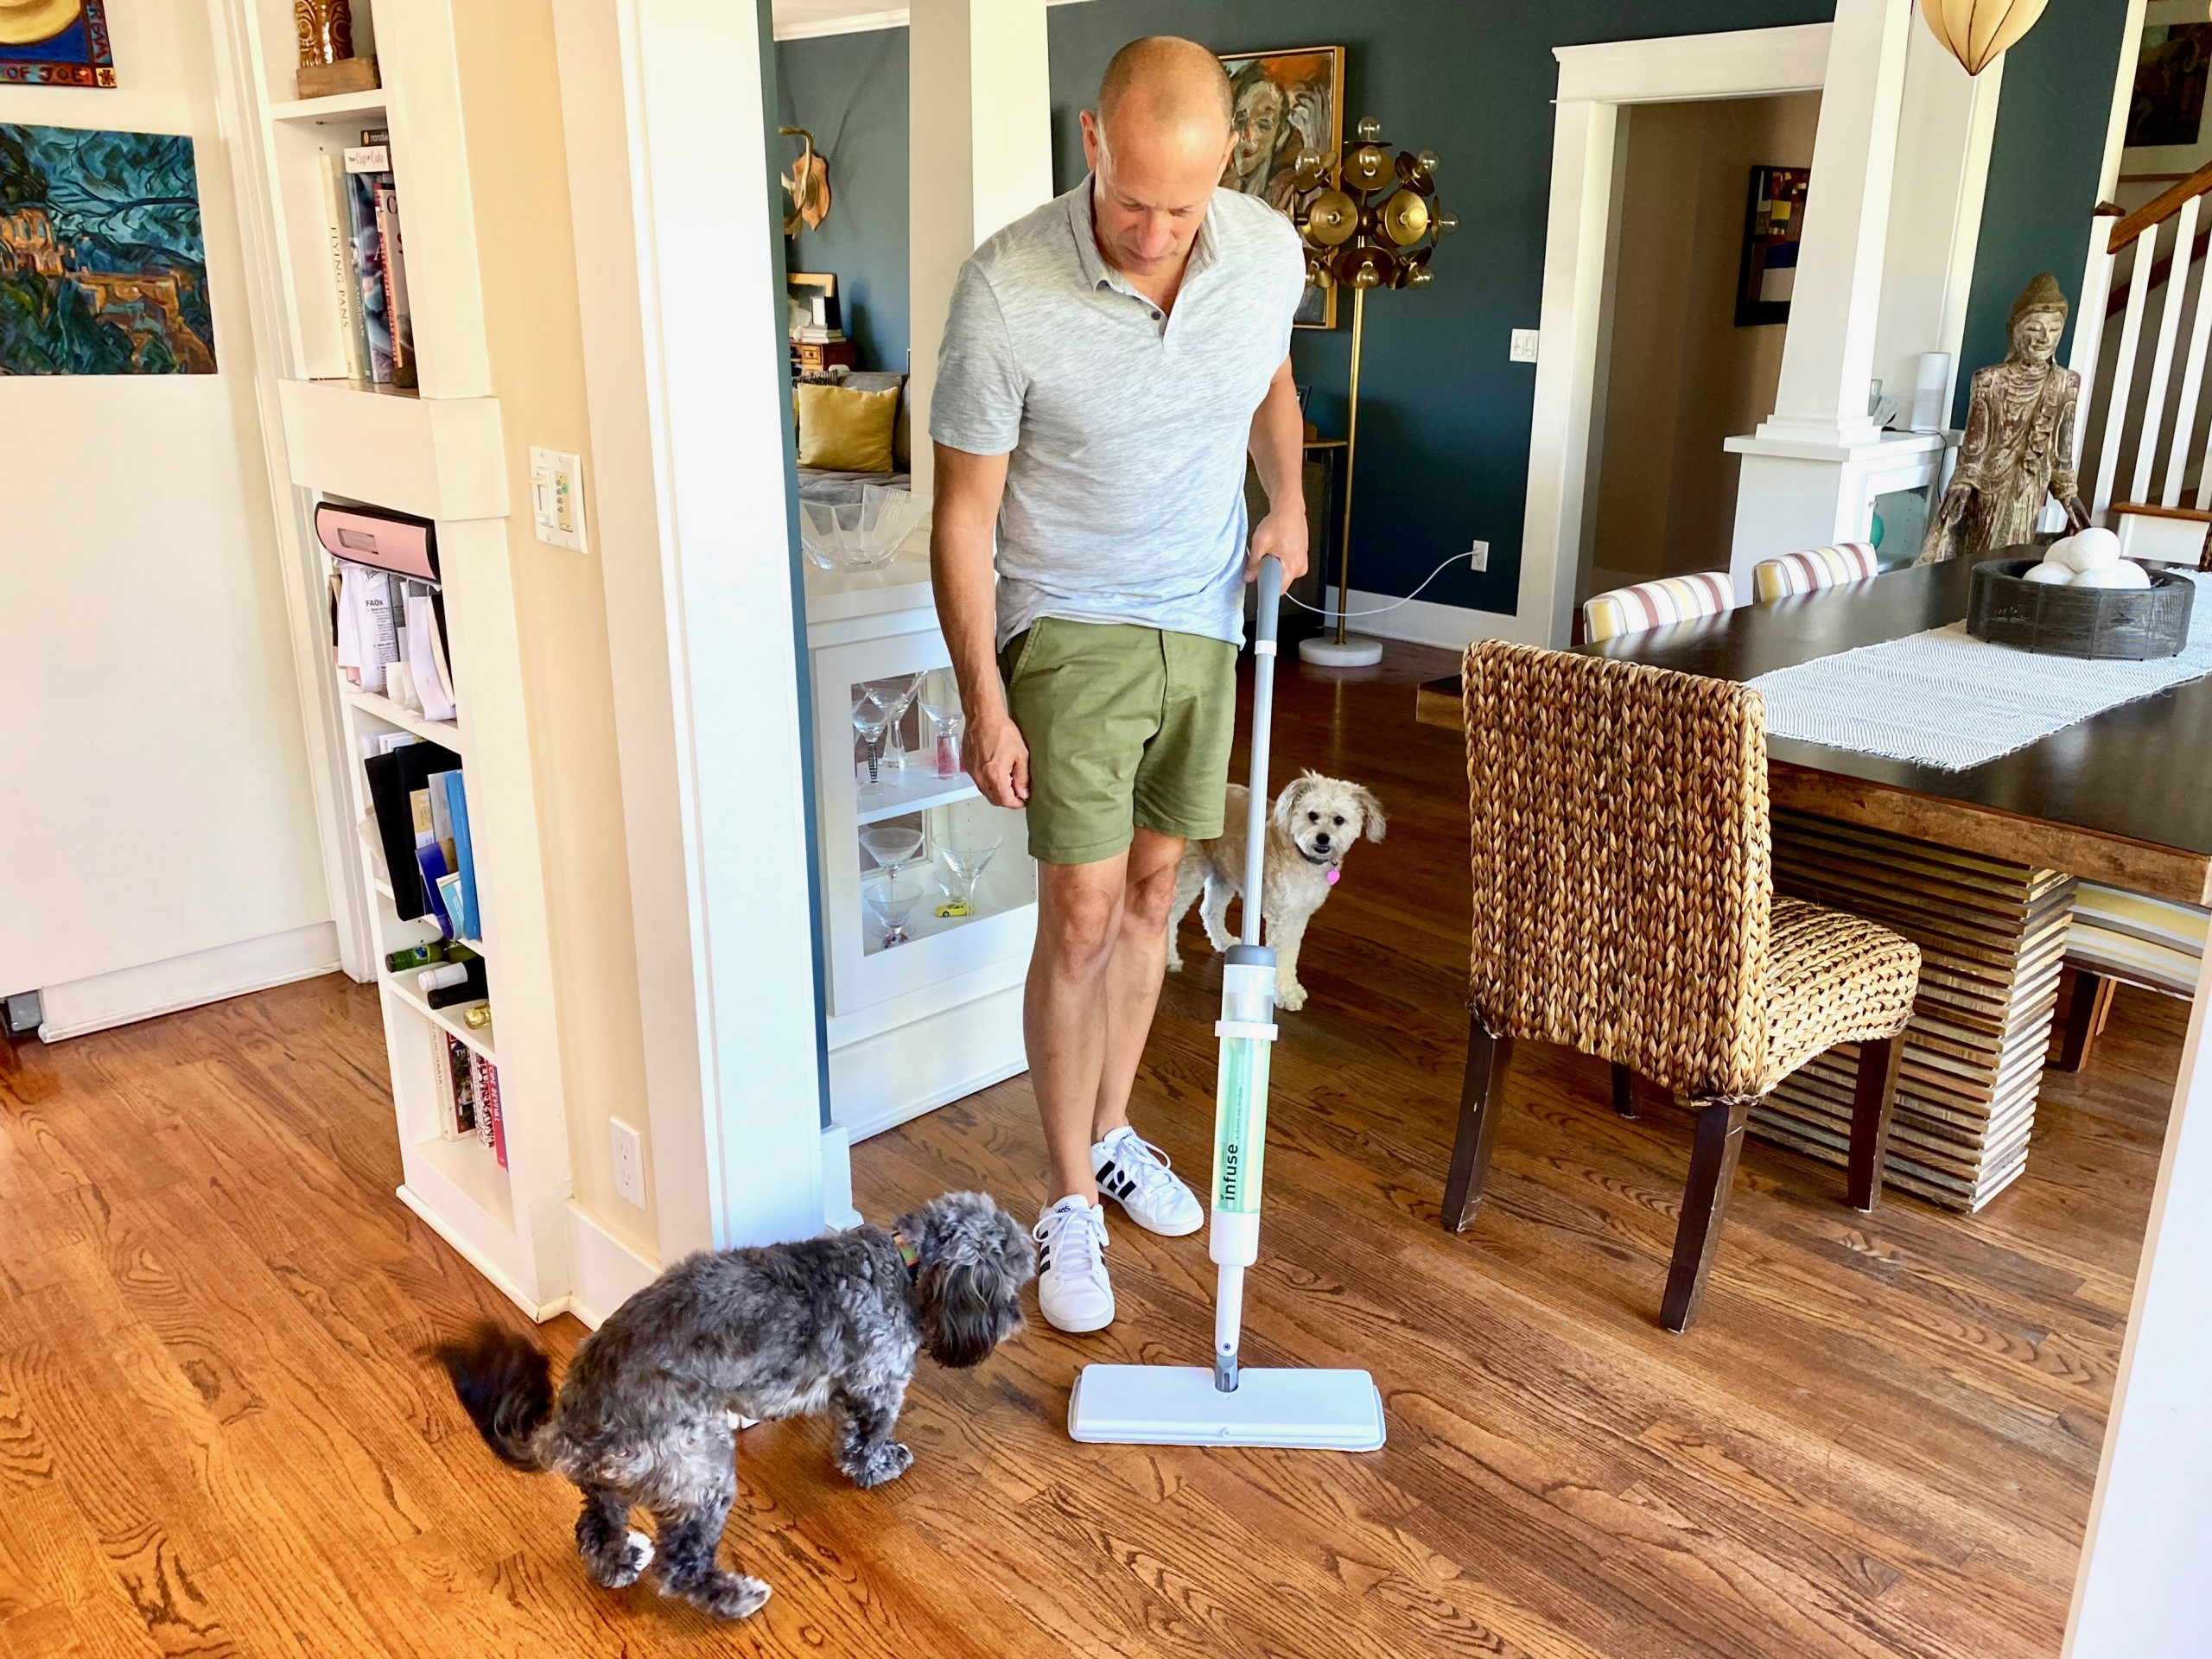 man cleans wood floors using Infuse Cleaning System mop